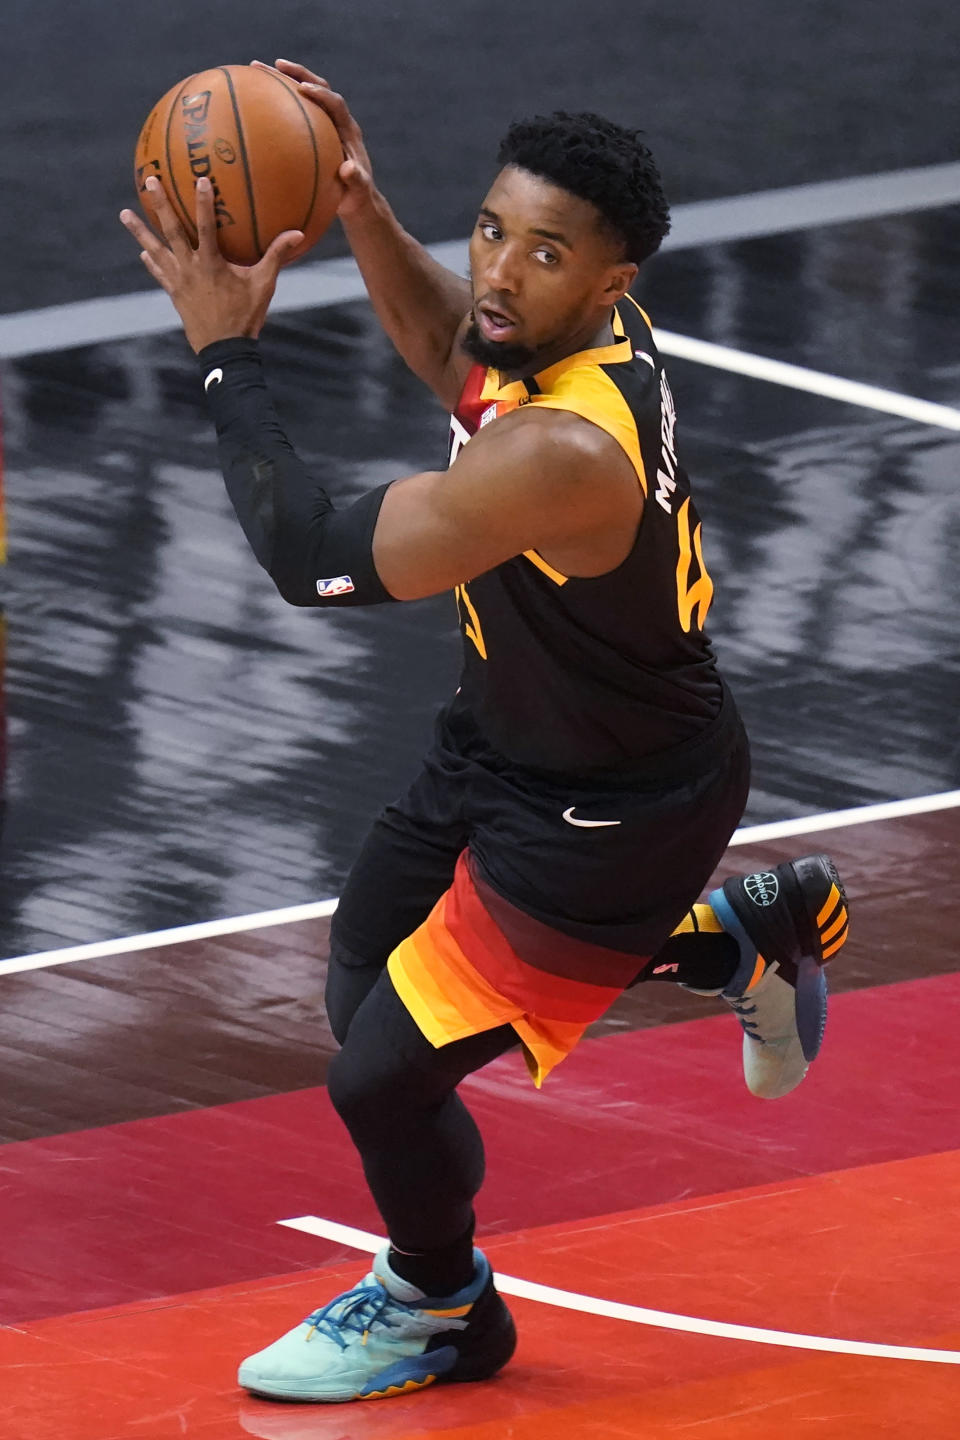 Utah Jazz guard Donovan Mitchell brings the ball up during the first half of the team's NBA basketball game against the Oklahoma City Thunder on Tuesday, April 13, 2021, in Salt Lake City. (AP Photo/Rick Bowmer)